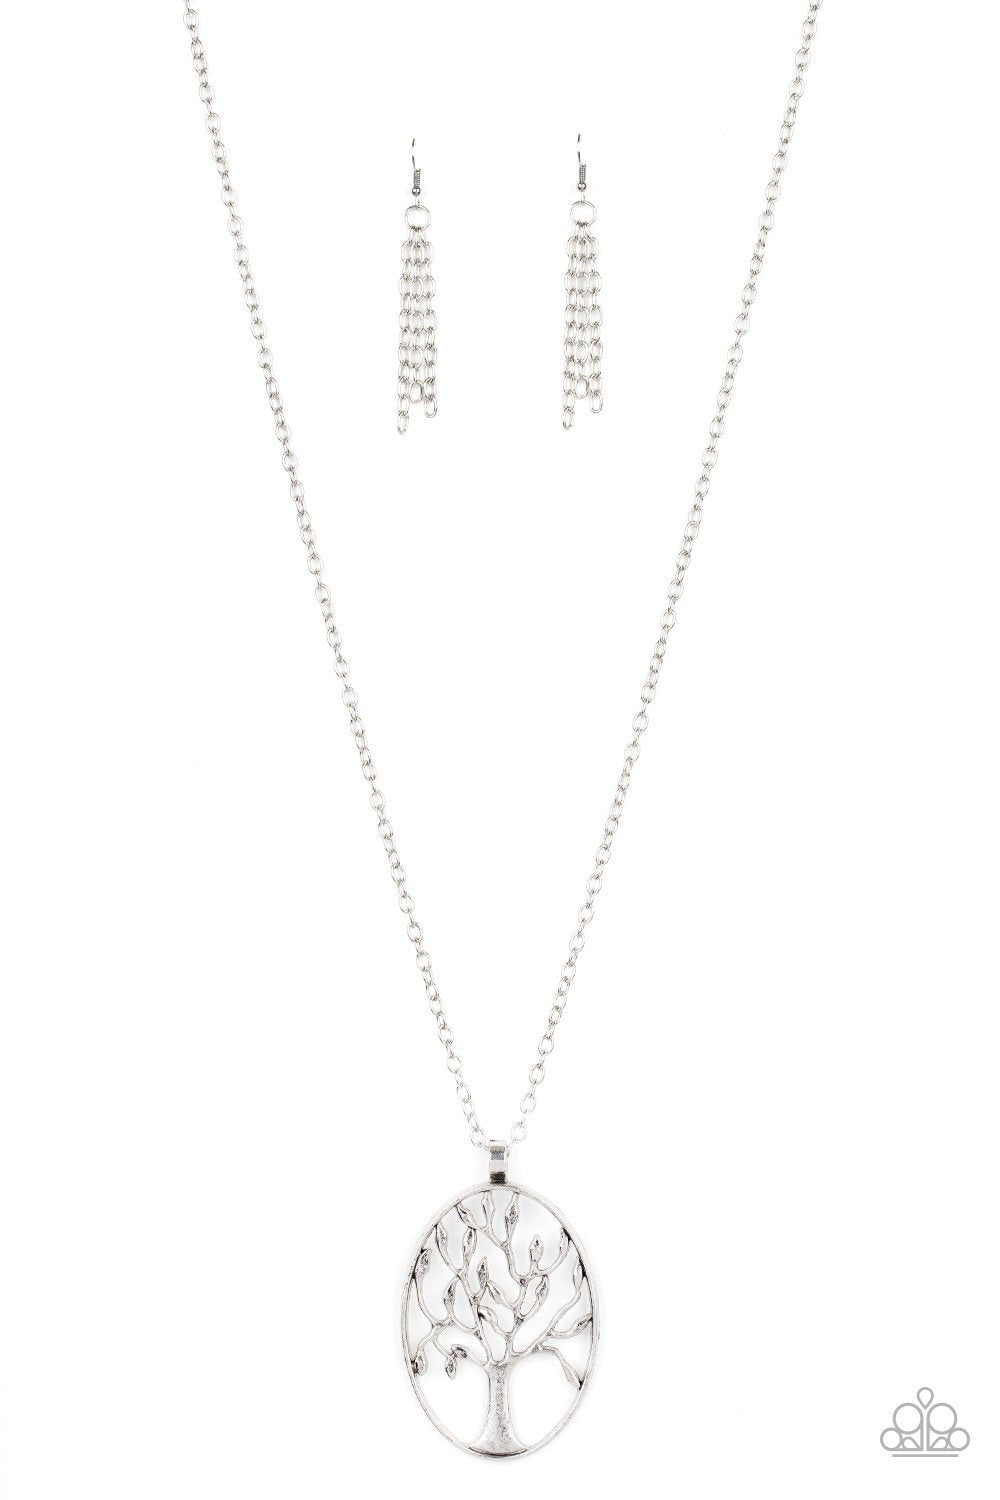 Paparazzi Necklace ~ Well-Rooted - Silver